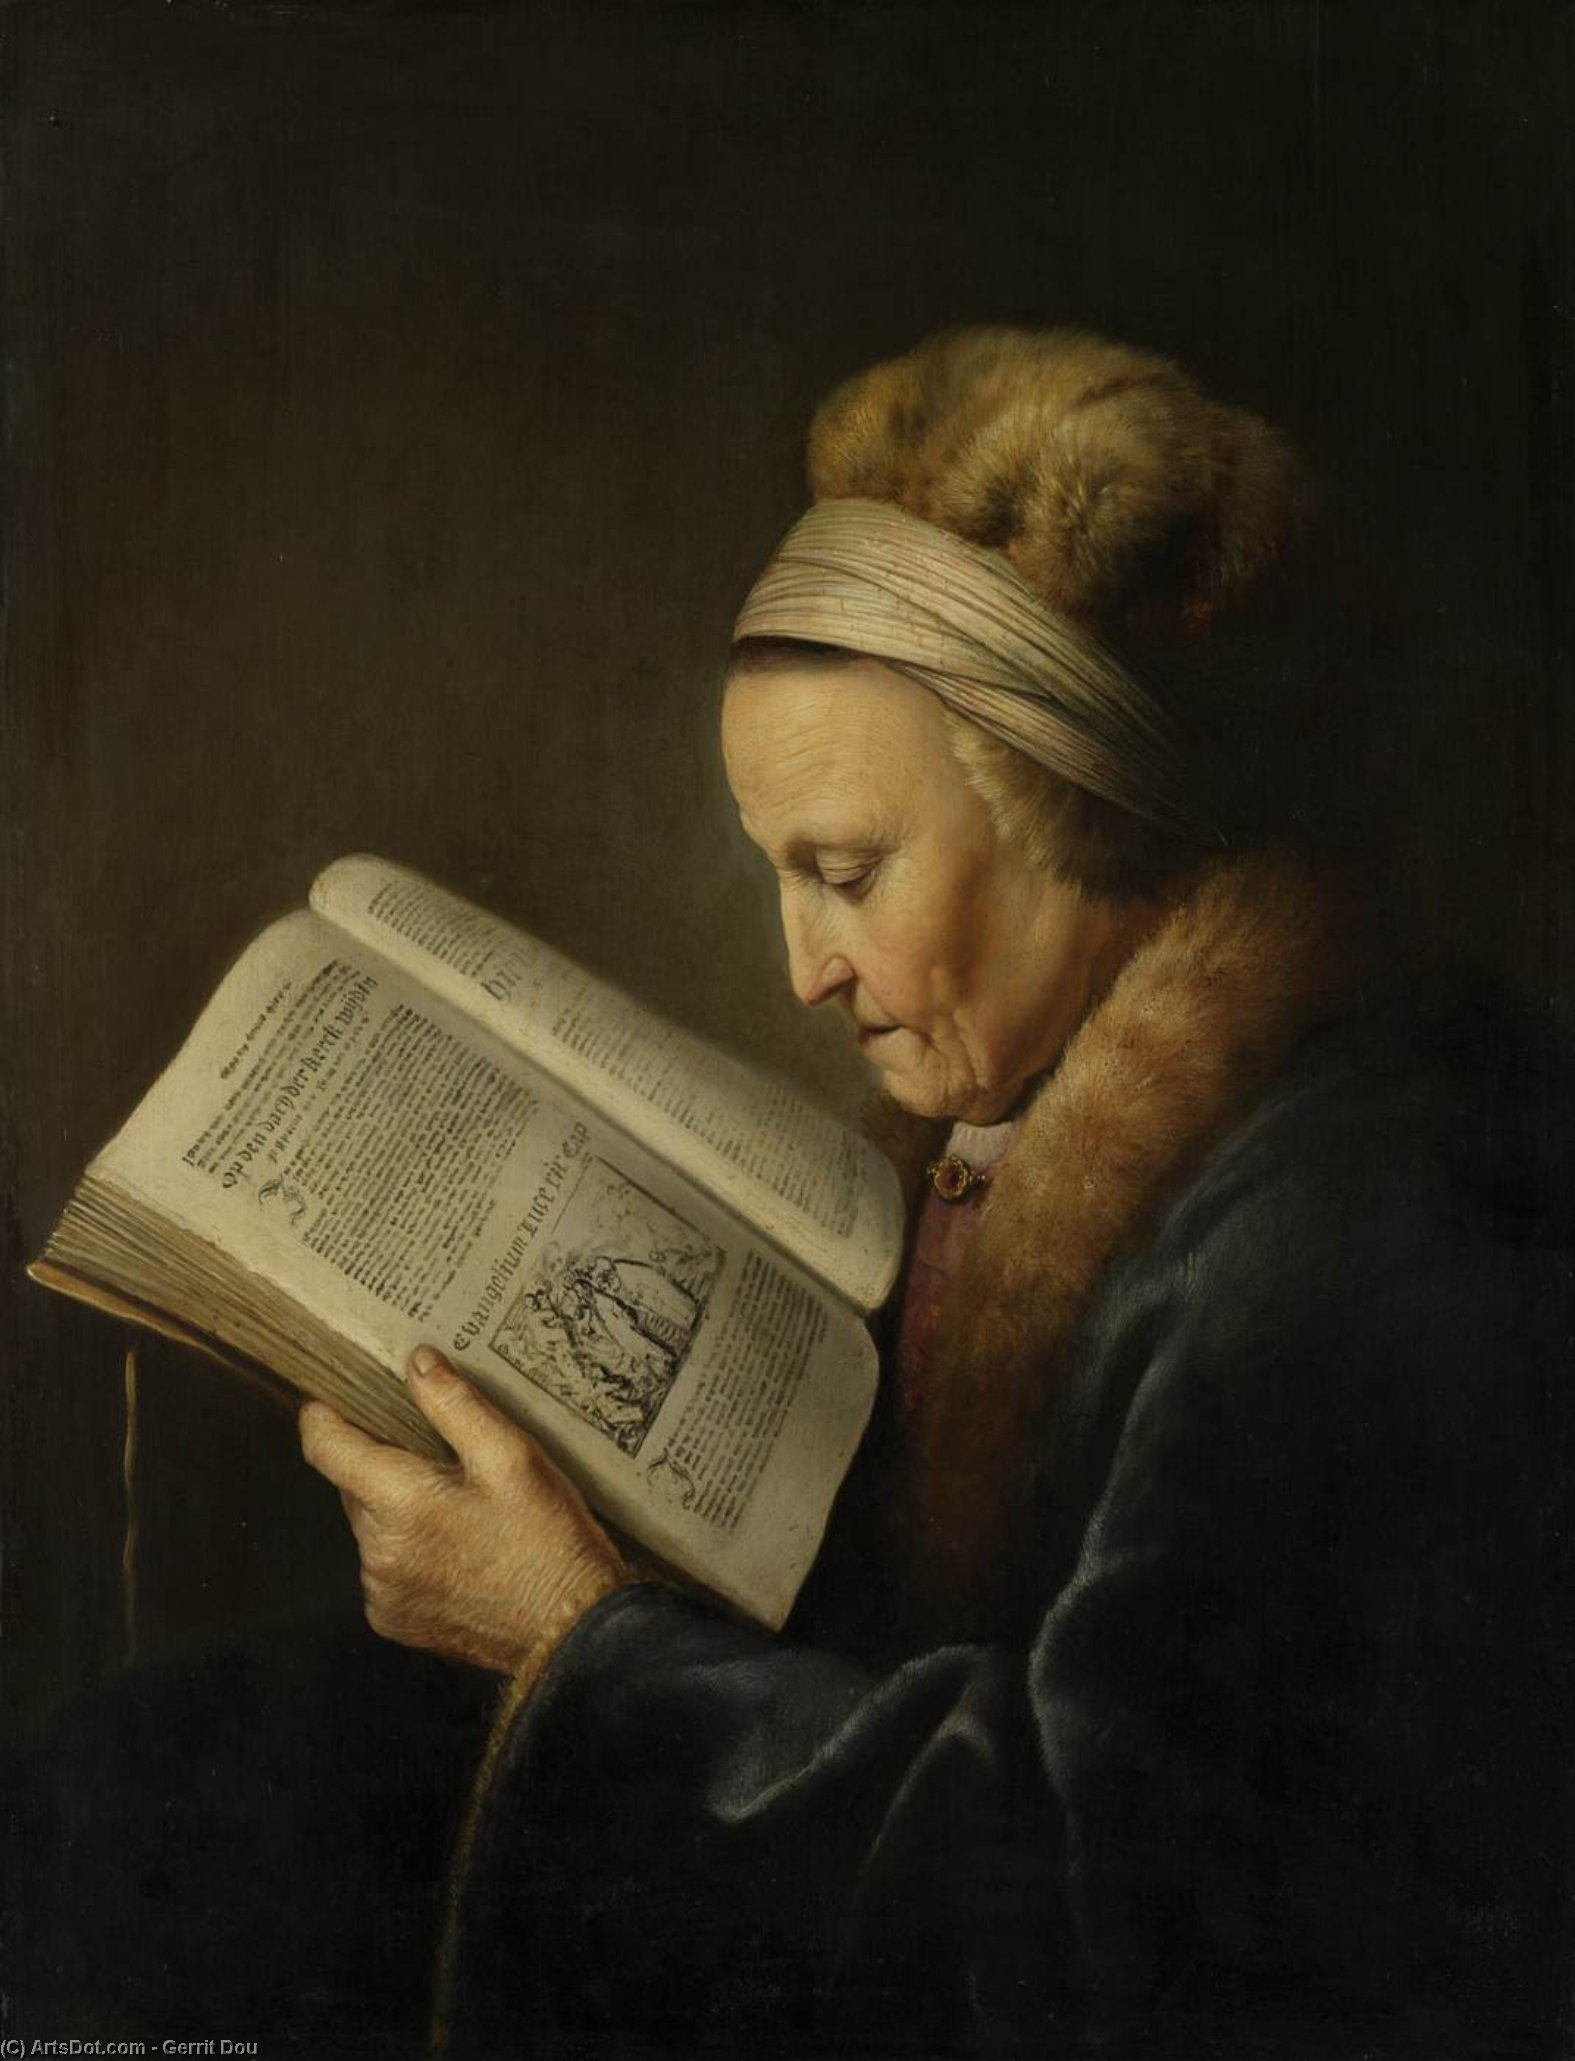 Order Fine Art Print Old Woman Reading a Bible, 1630 by Gerrit (Gérard) Dou (1613-1675, Netherlands) | ArtsDot.com | Order Textured Print Old Woman Reading a Bible, 1630 by Gerrit (Gérard) Dou (1613-1675, Netherlands) | ArtsDot.com